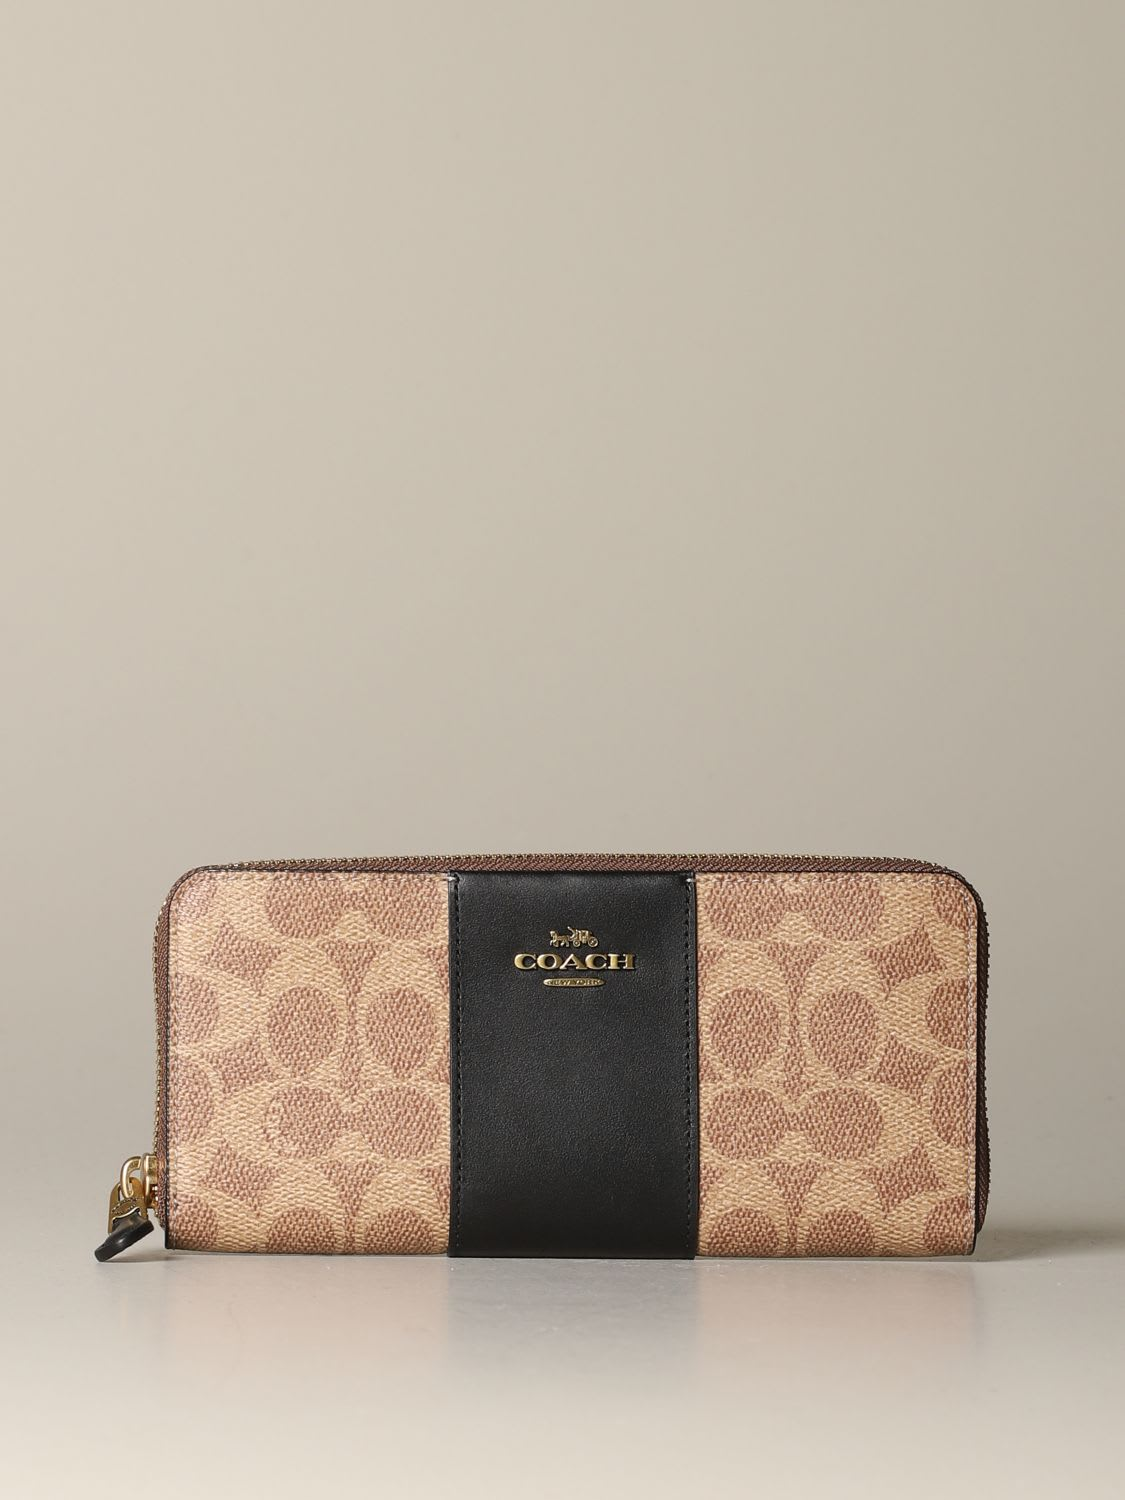 Coach Wallet Coach Continental Wallet In Leather And Coated Canvas With Logo